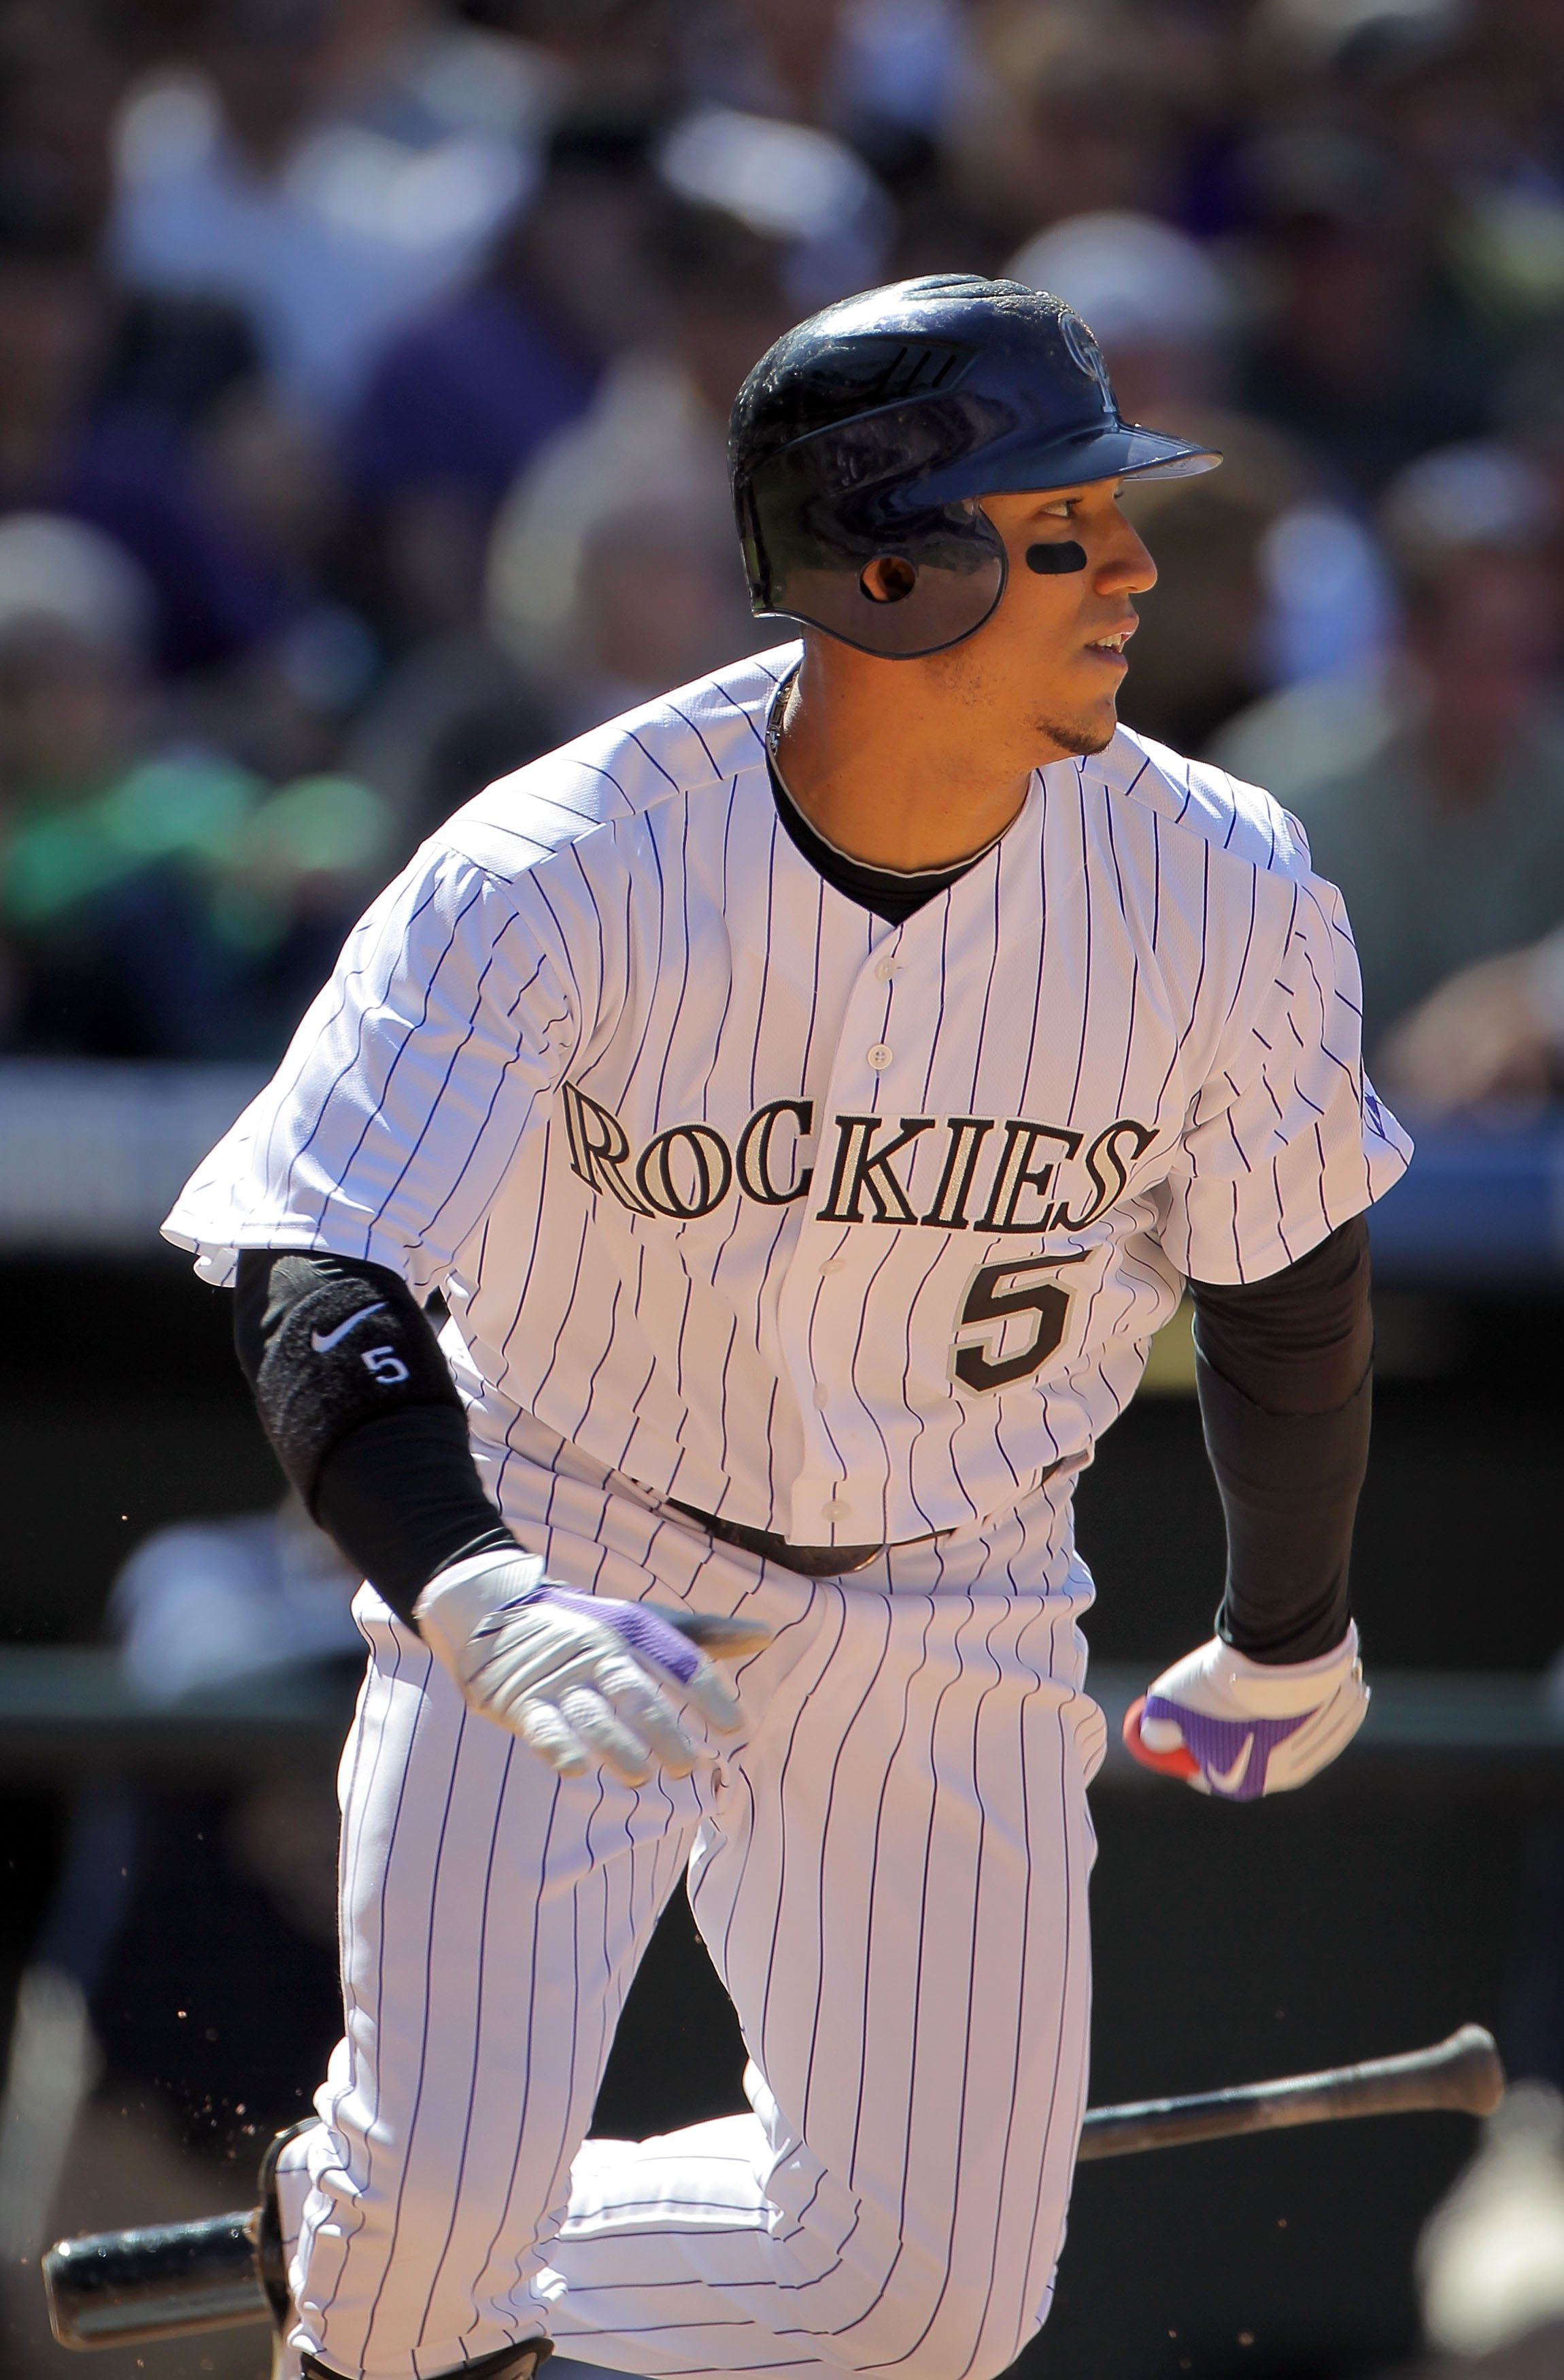 DENVER - APRIL 09:  Carlos Gonzalez #5 of the Colorado Rockies heads for first base as he takes an at bat against the San Diego Padres during MLB action on Opening Day at Coors Field on April 9, 2010 in Denver, Colorado. The Rockies defeated the Padres 7-